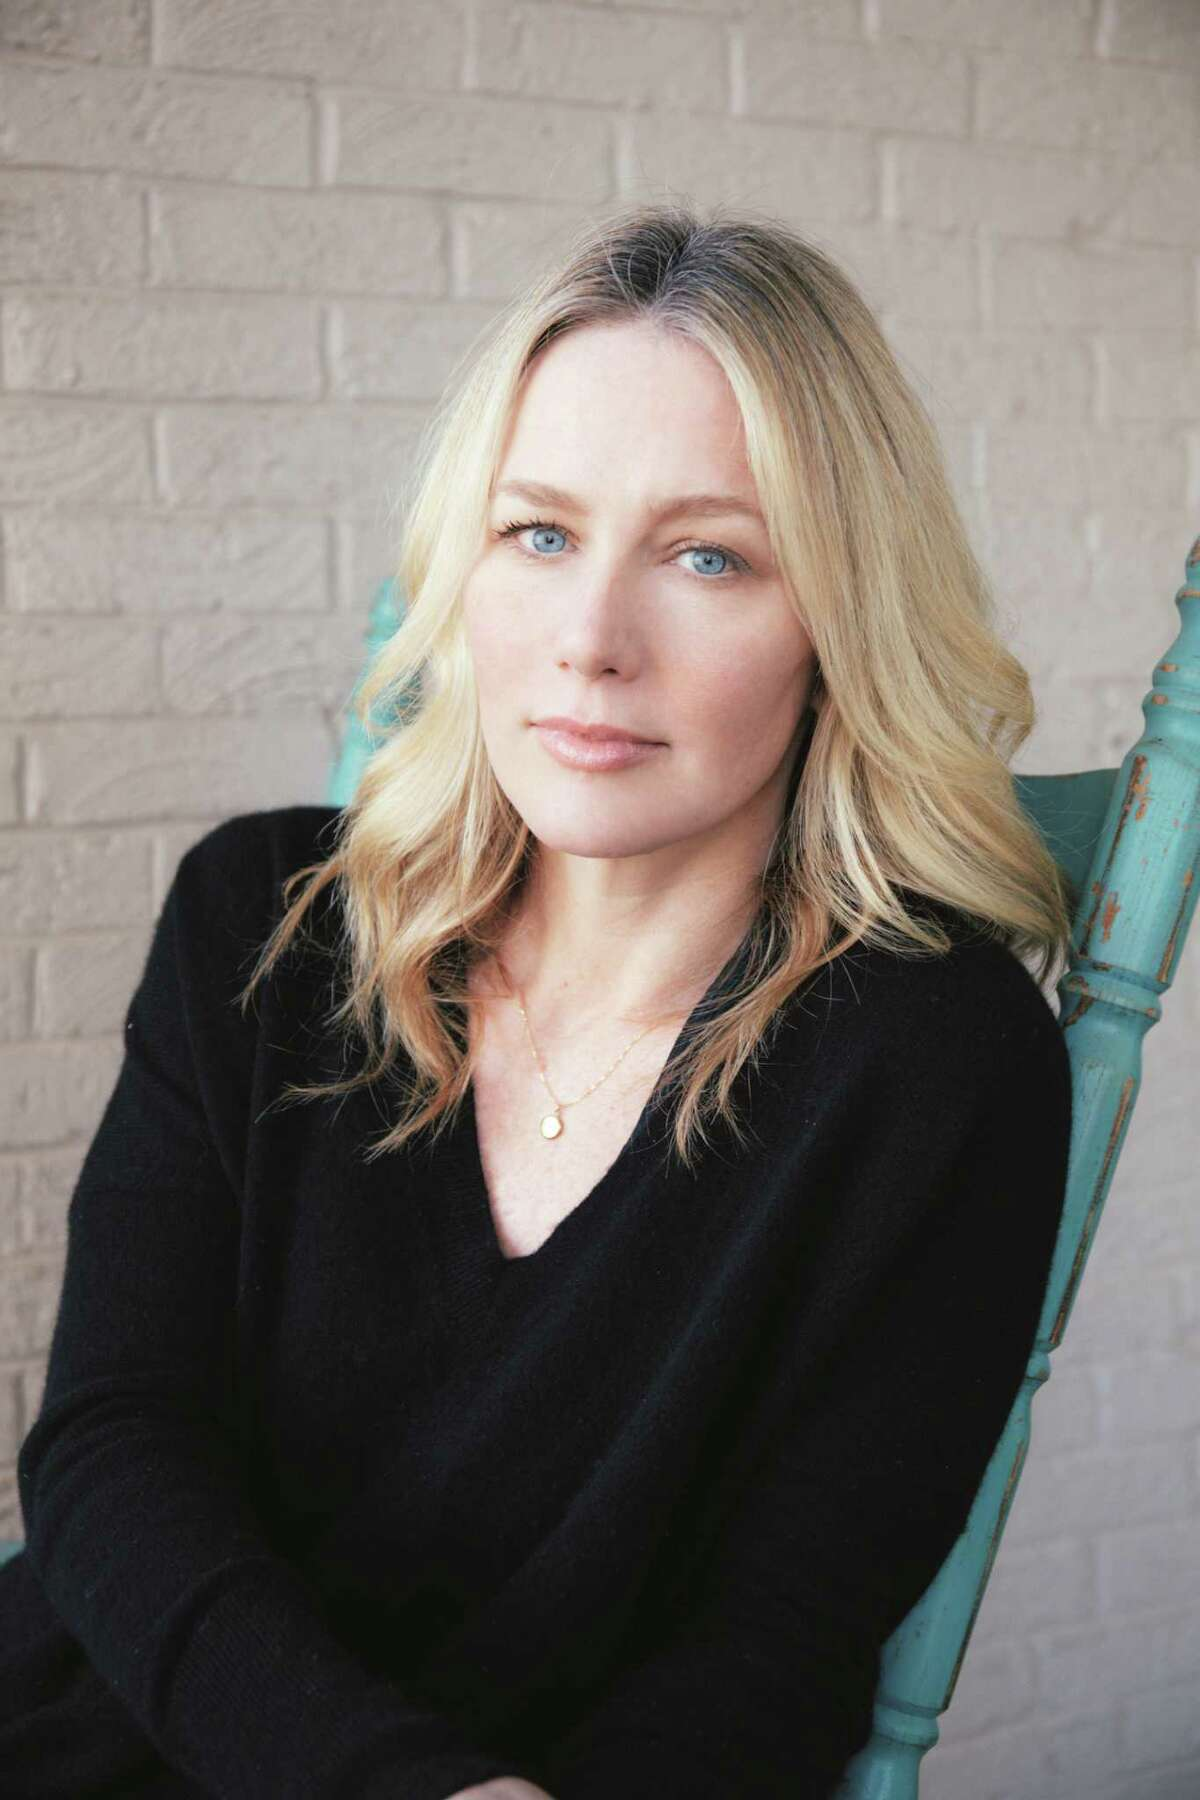 Allison Moorer is a singer-songwriter who has been making albums for more than 20 years. In 2019 she published Blood: A Memoir, in which she tries to make sense of a horrible family tragedy when she was 14.